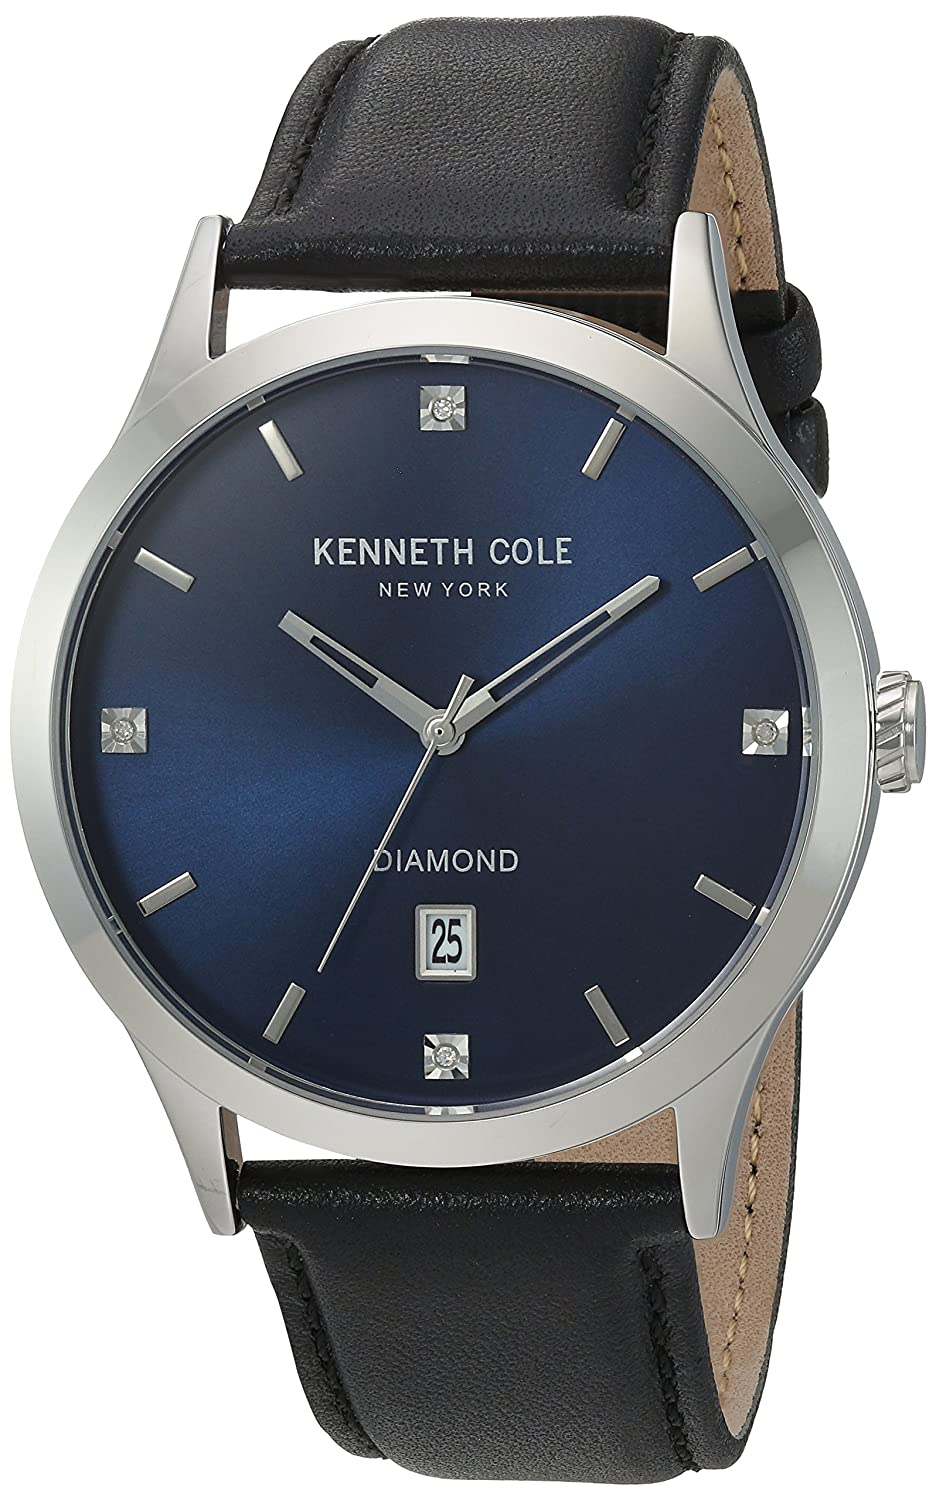 c71a931e087 Amazon.com  Kenneth Cole New York Men s Diamond Stainless Steel  Japanese-Quartz Watch with Leather Calfskin Strap